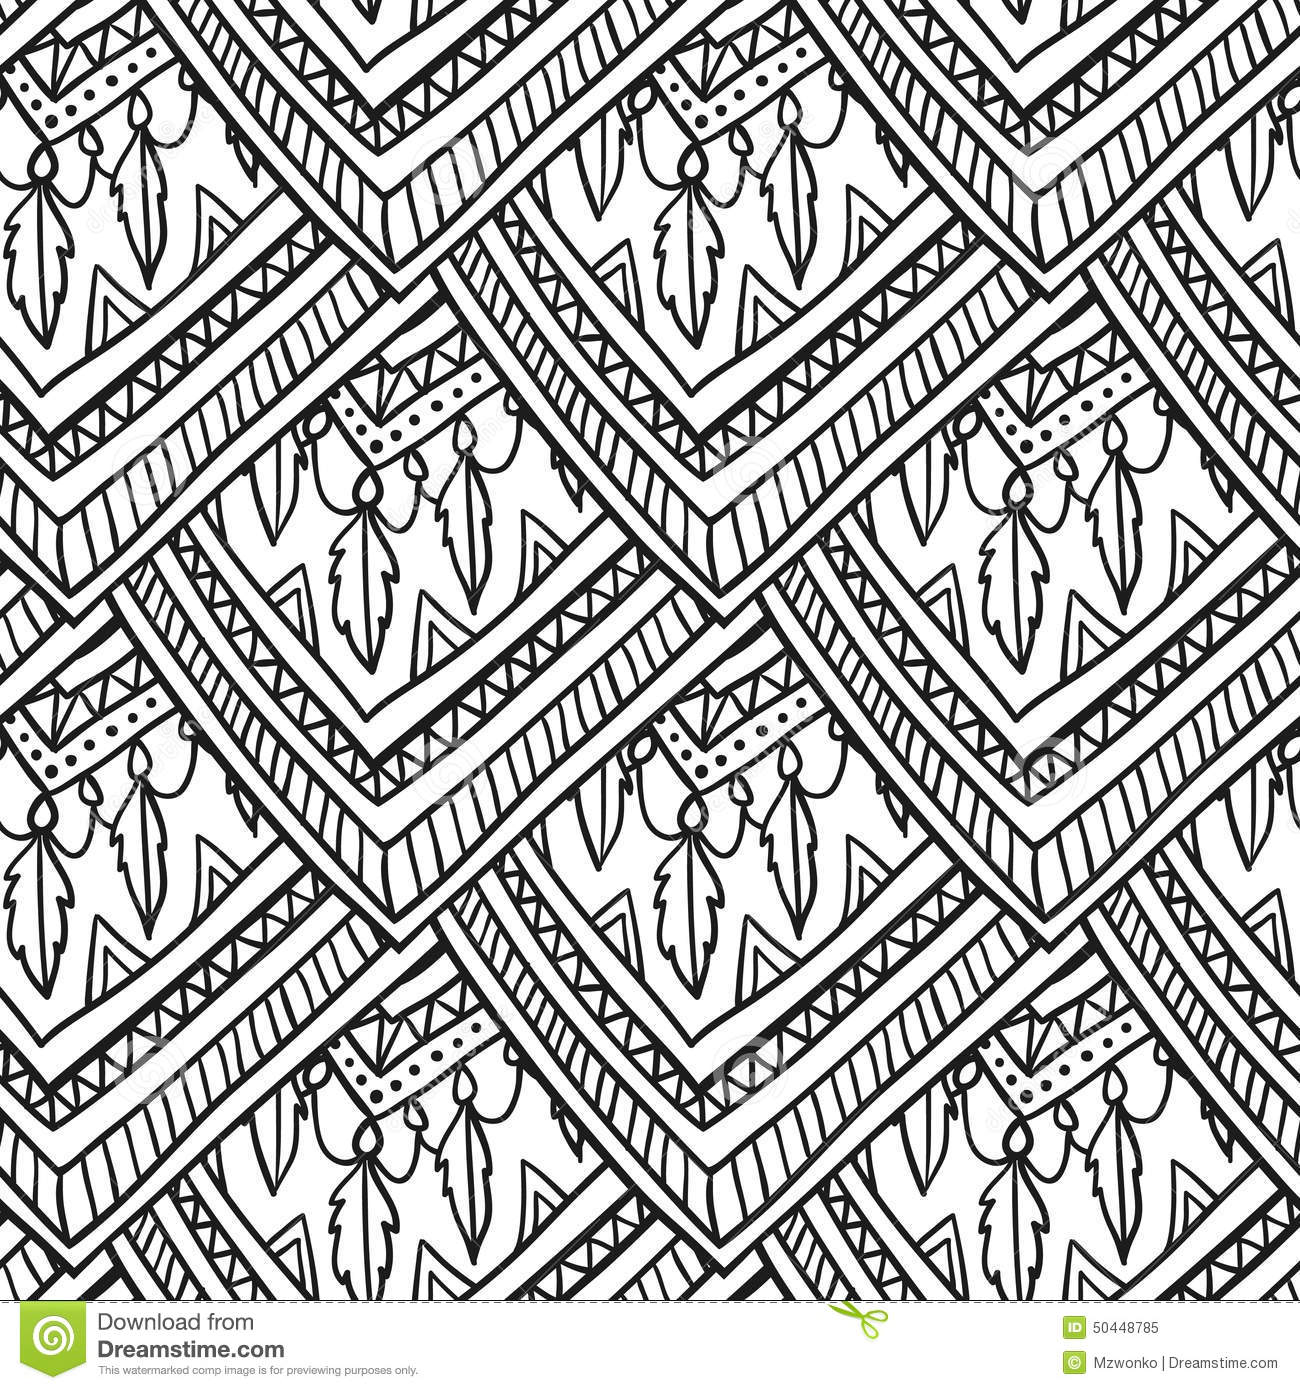 download ethno romb pattern stock illustration illustration of asian 50448785 - Ethno Muster